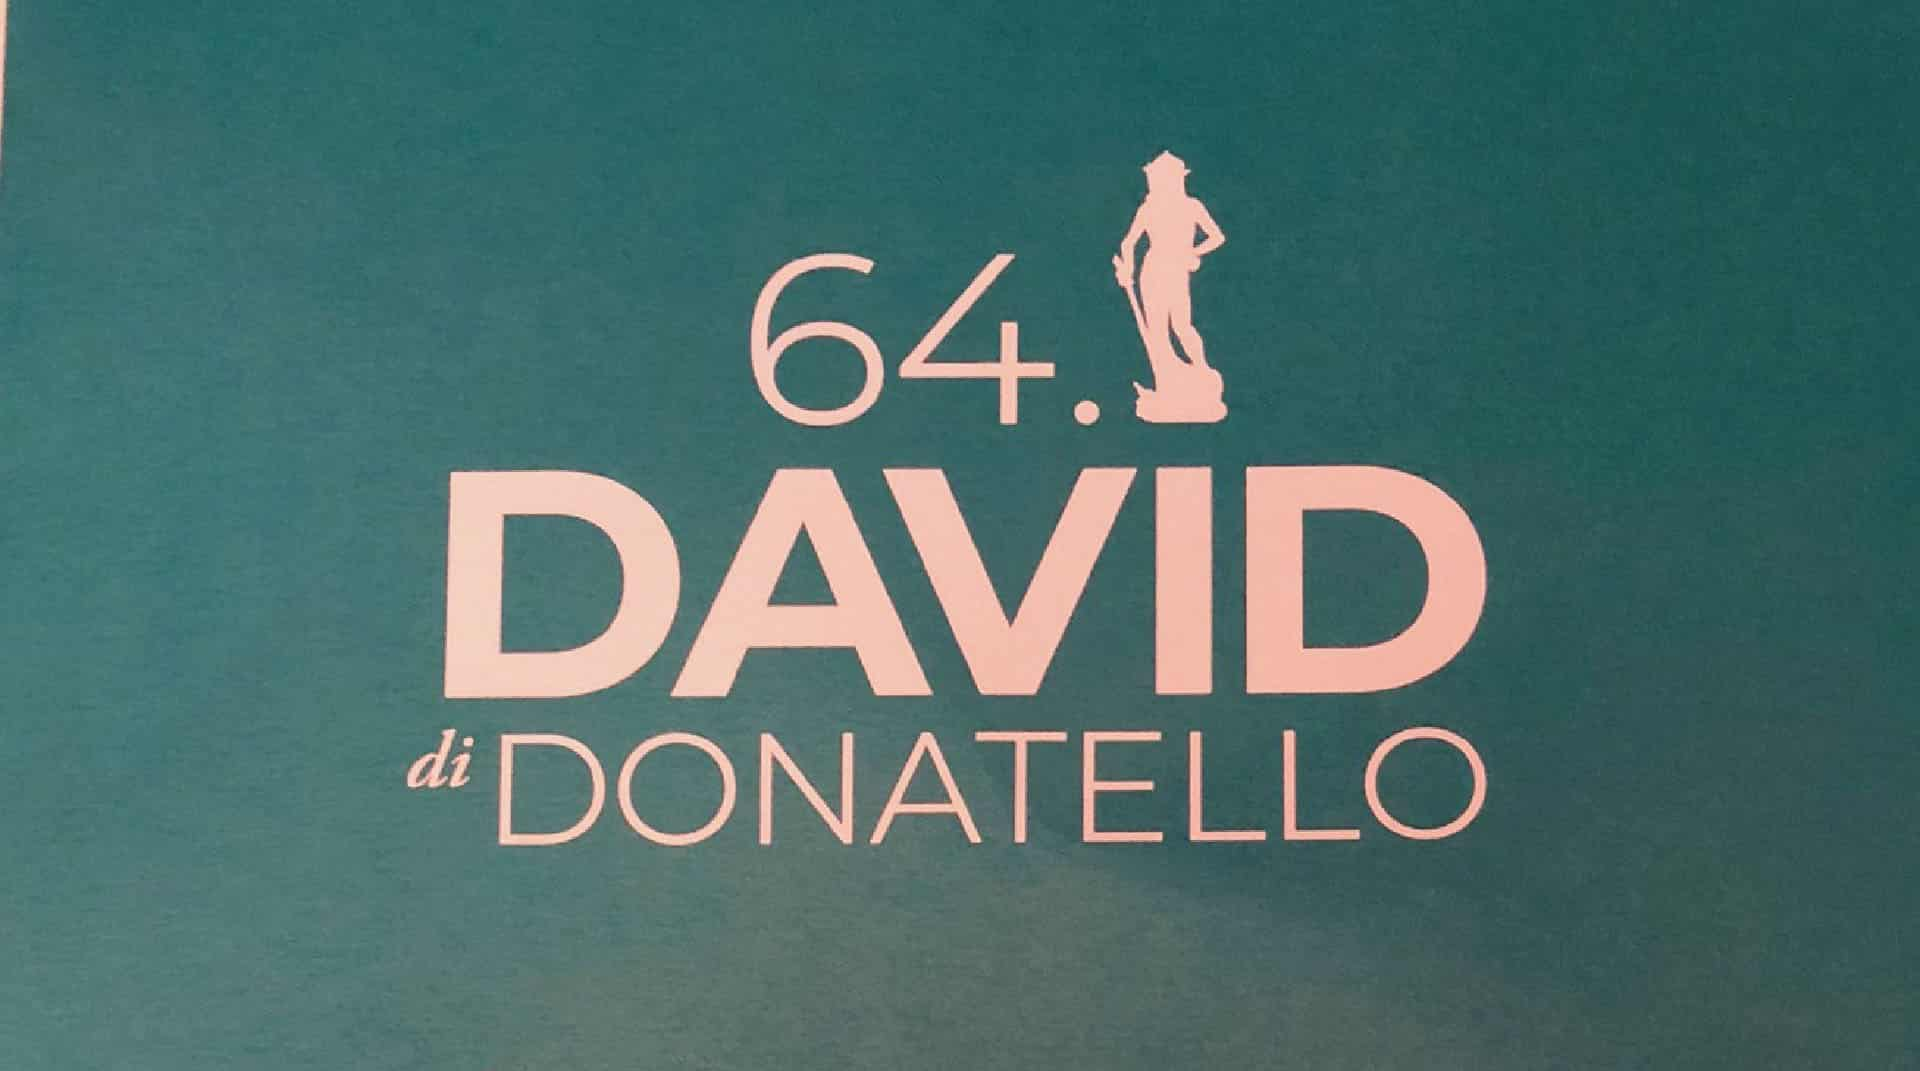 David di Donatello 2019: ecco le nomination